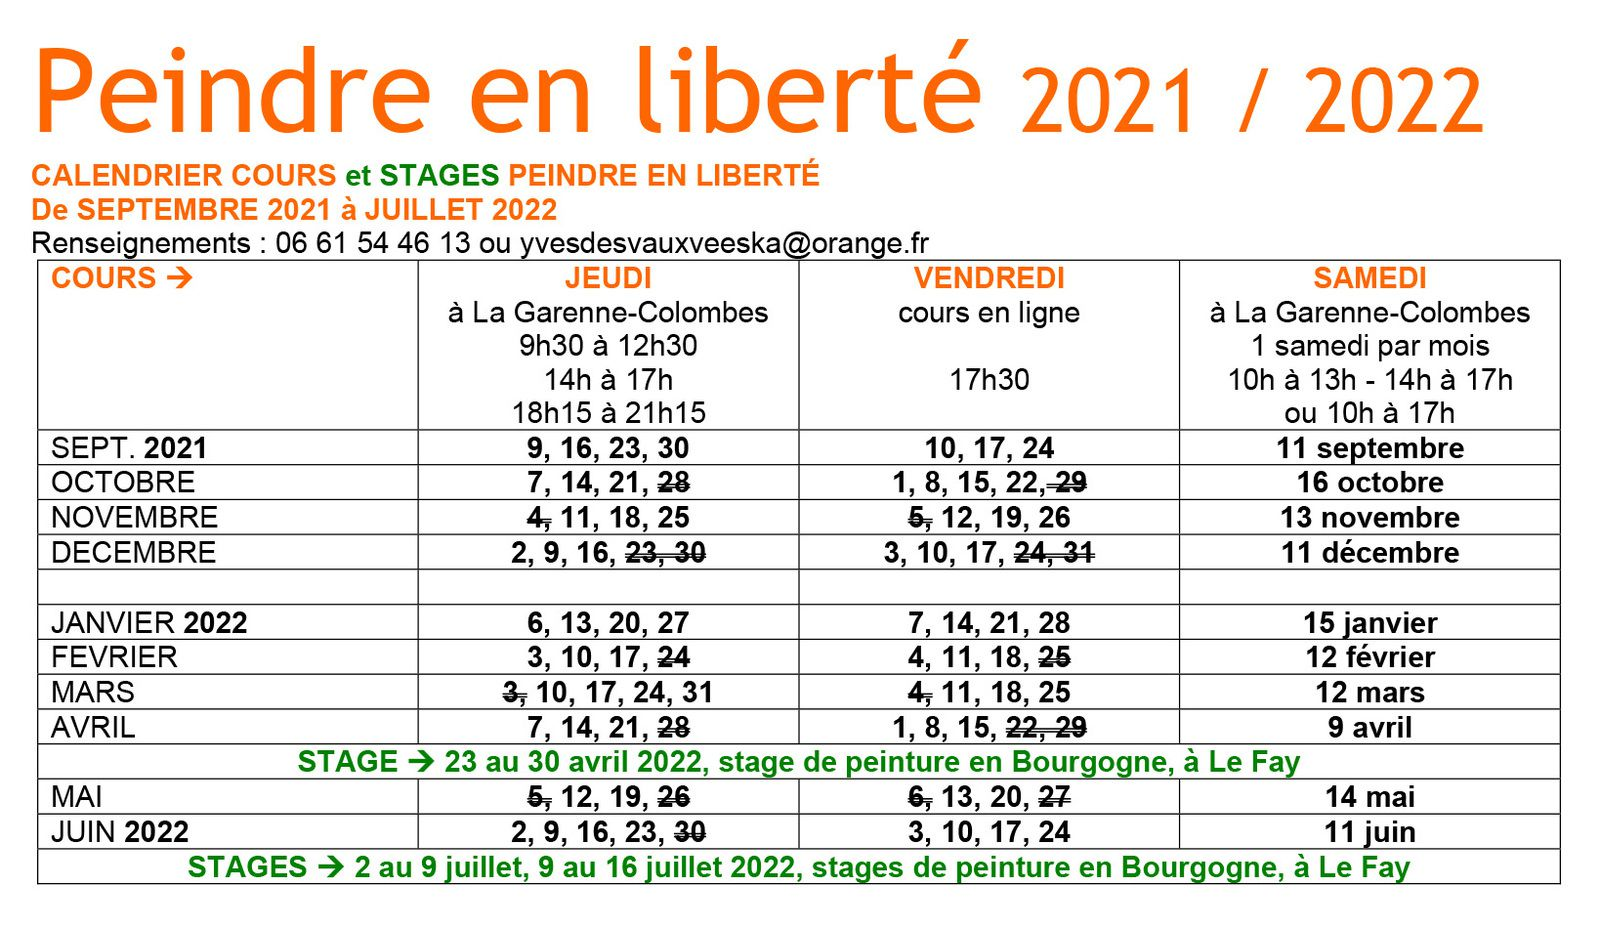 5. Calendrier cours et stages 2021 / 2022